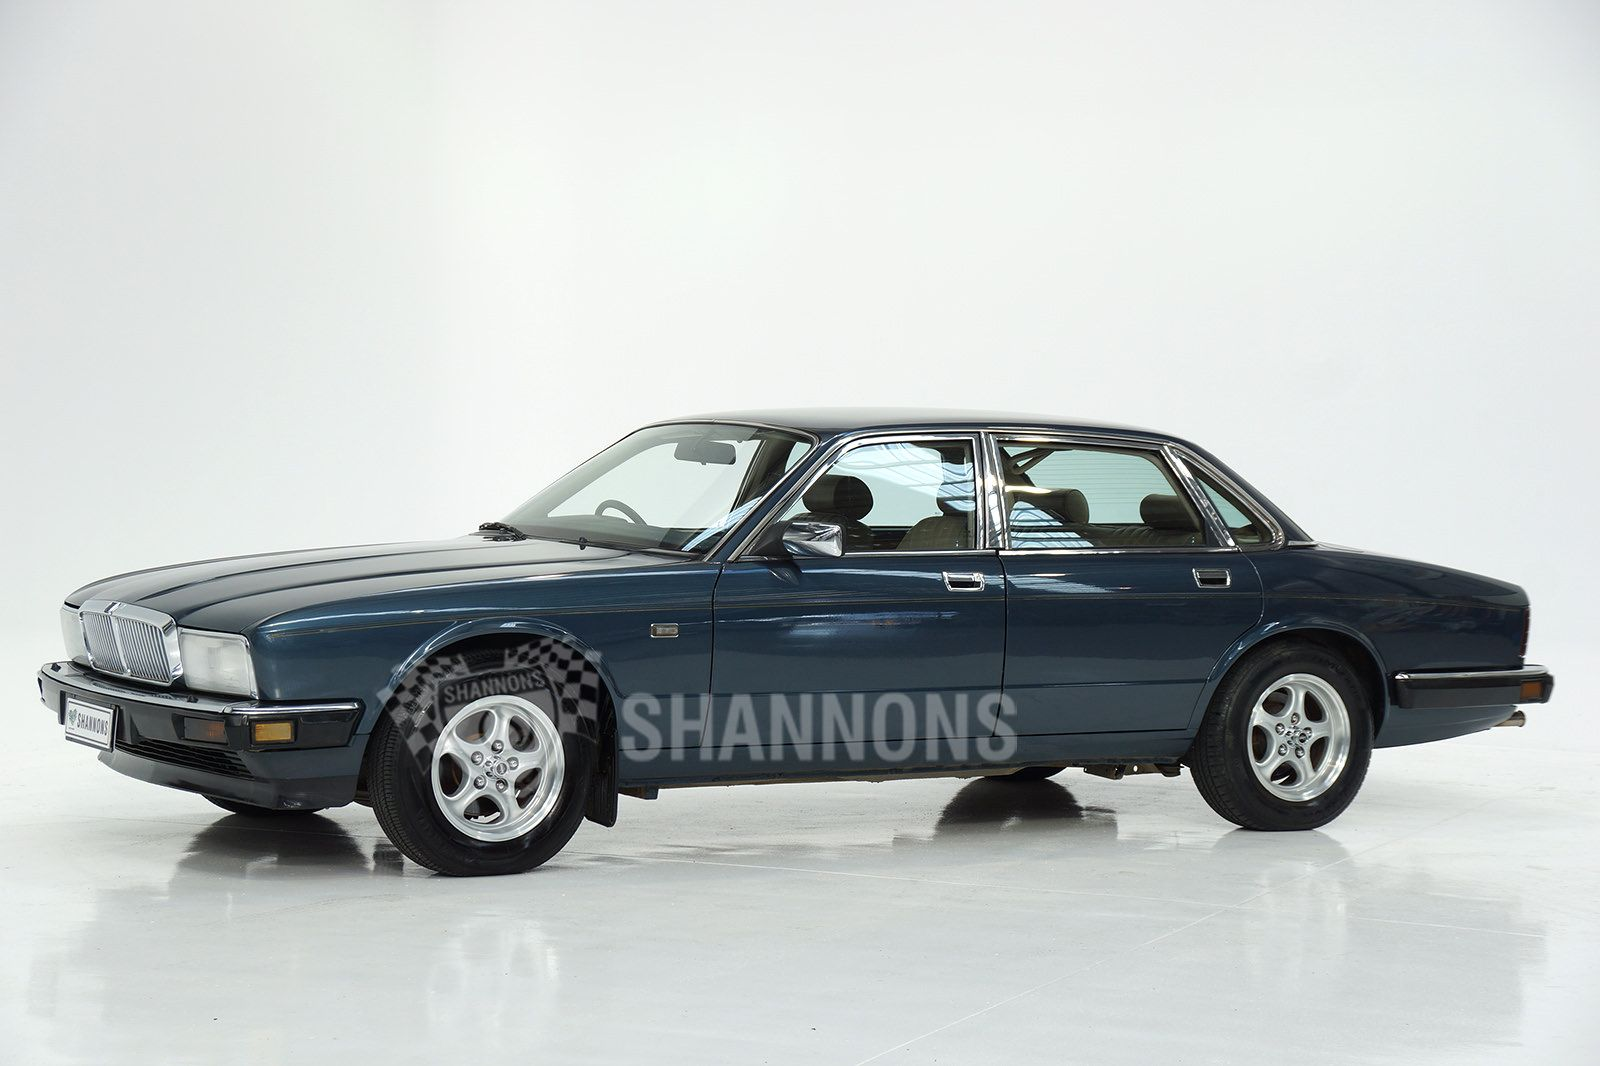 1989 Jaguar XJ6 Sovereign